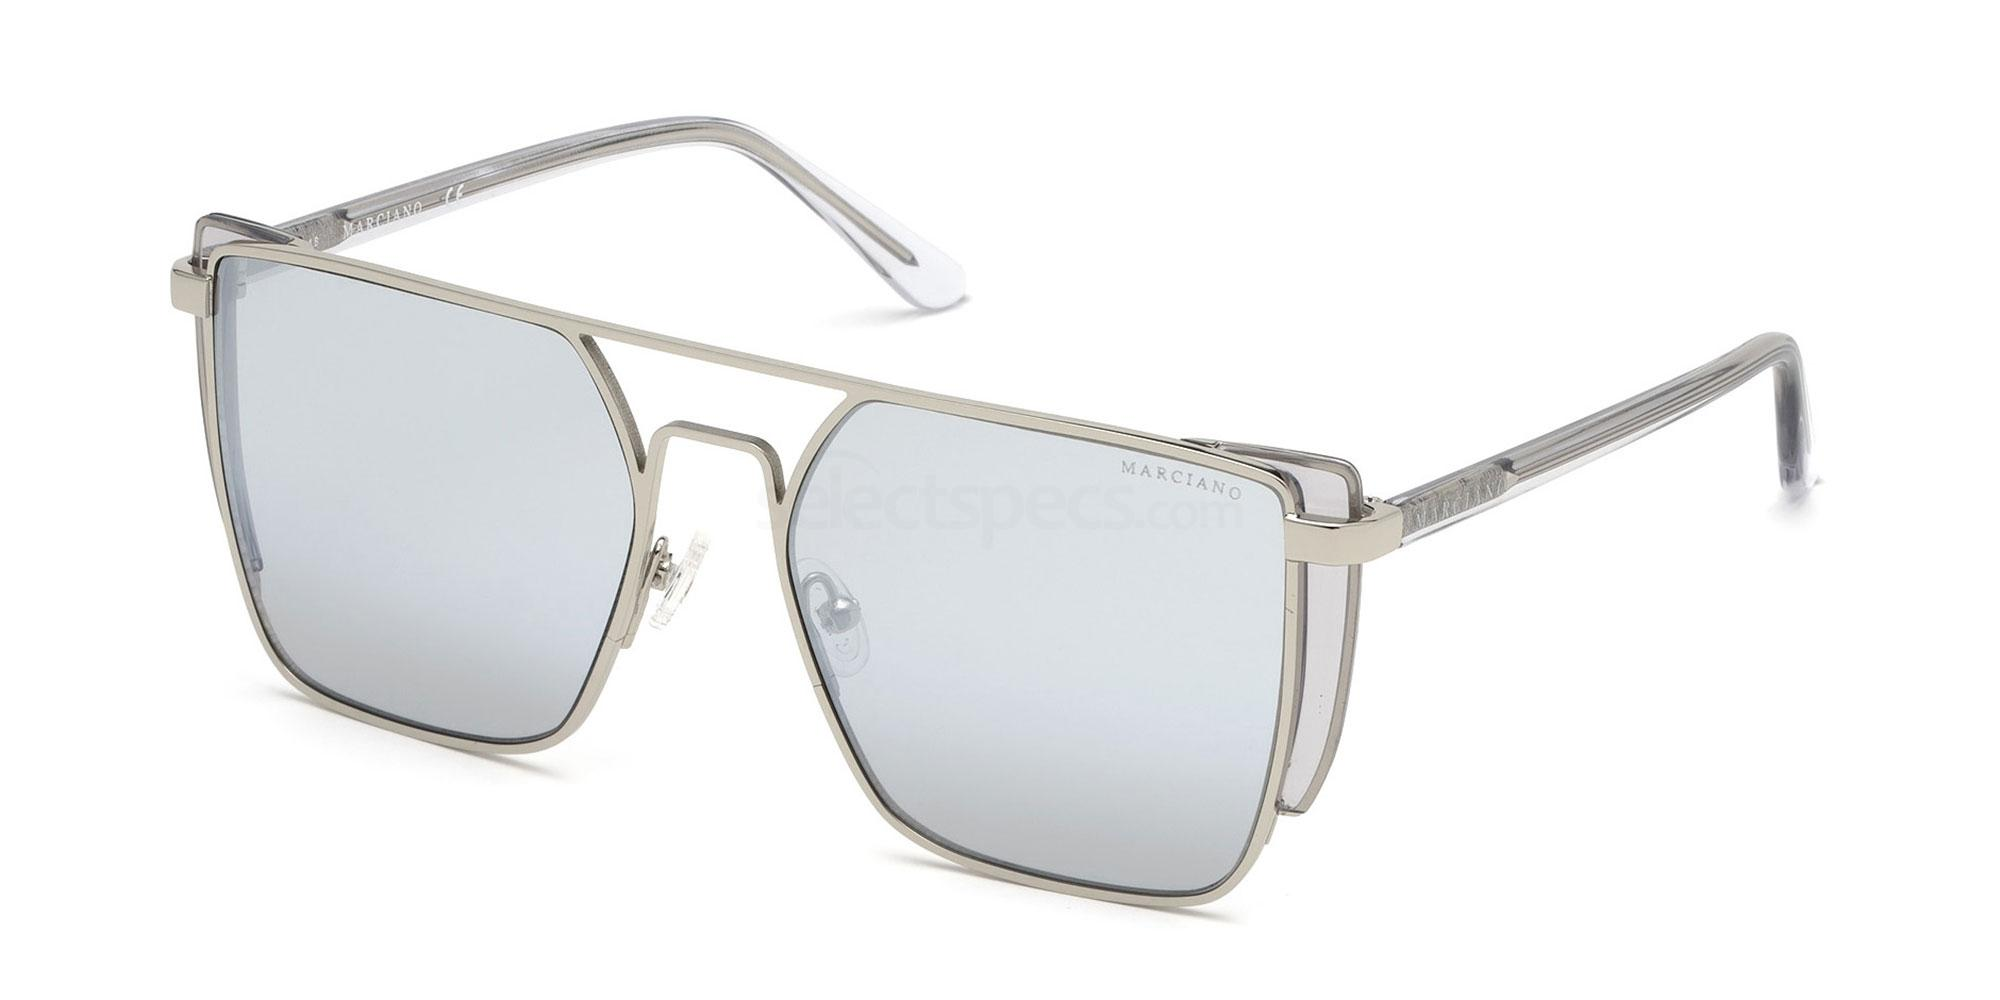 10B GM0789 Sunglasses, Guess by Marciano